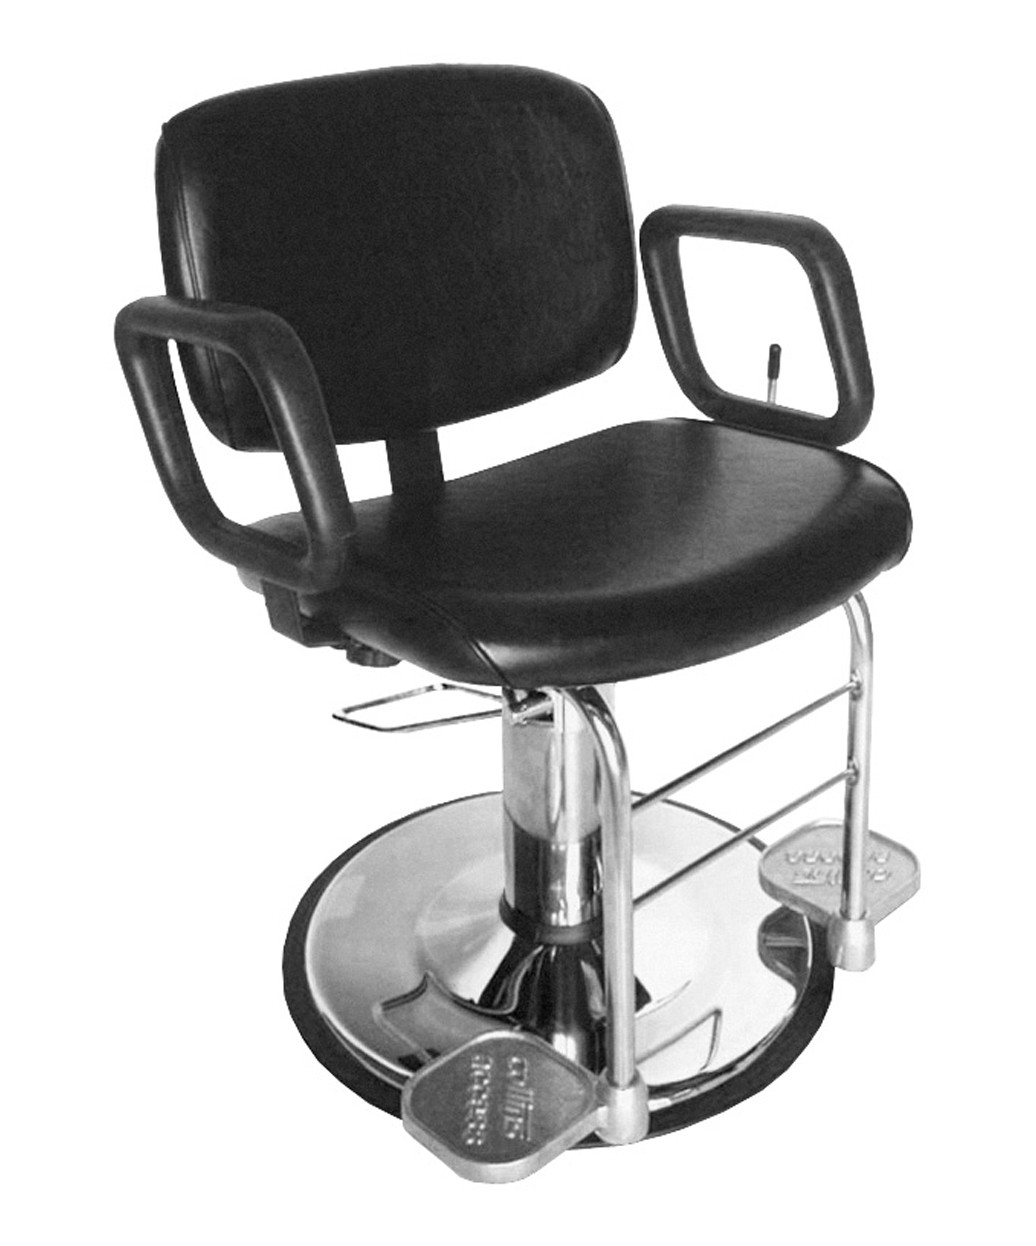 all purpose salon chair ikea black collins 7710 for waxing and threading